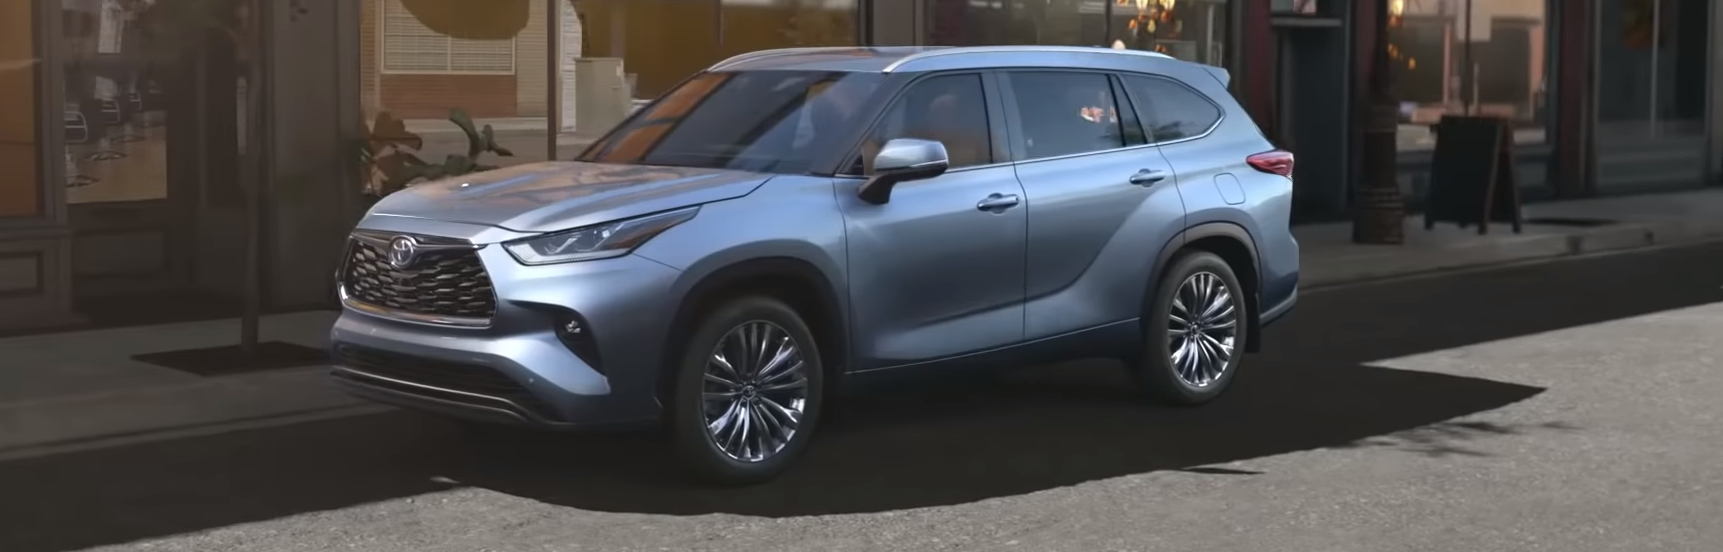 When does the 2020 Toyota Highlander Hybrid come out?